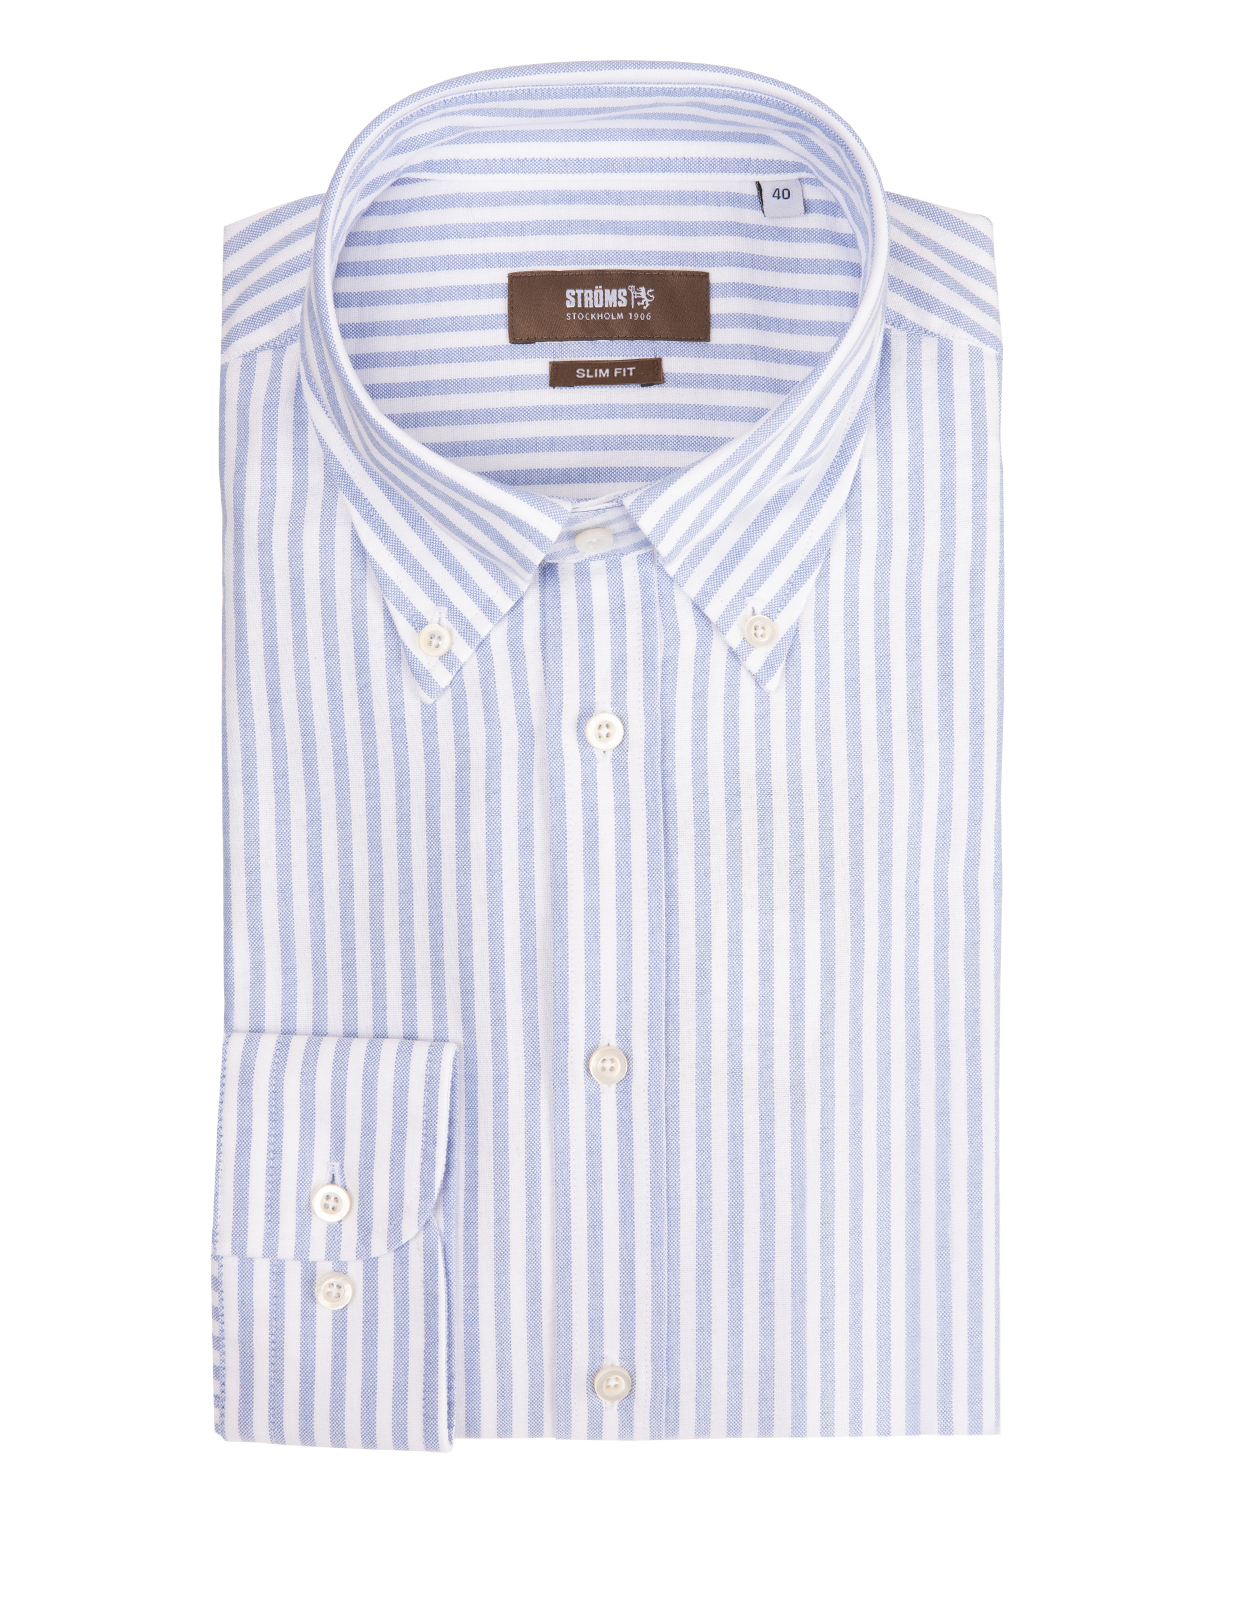 Slim Fit Button Down Oxfordskjorta KadettrandBlåVit